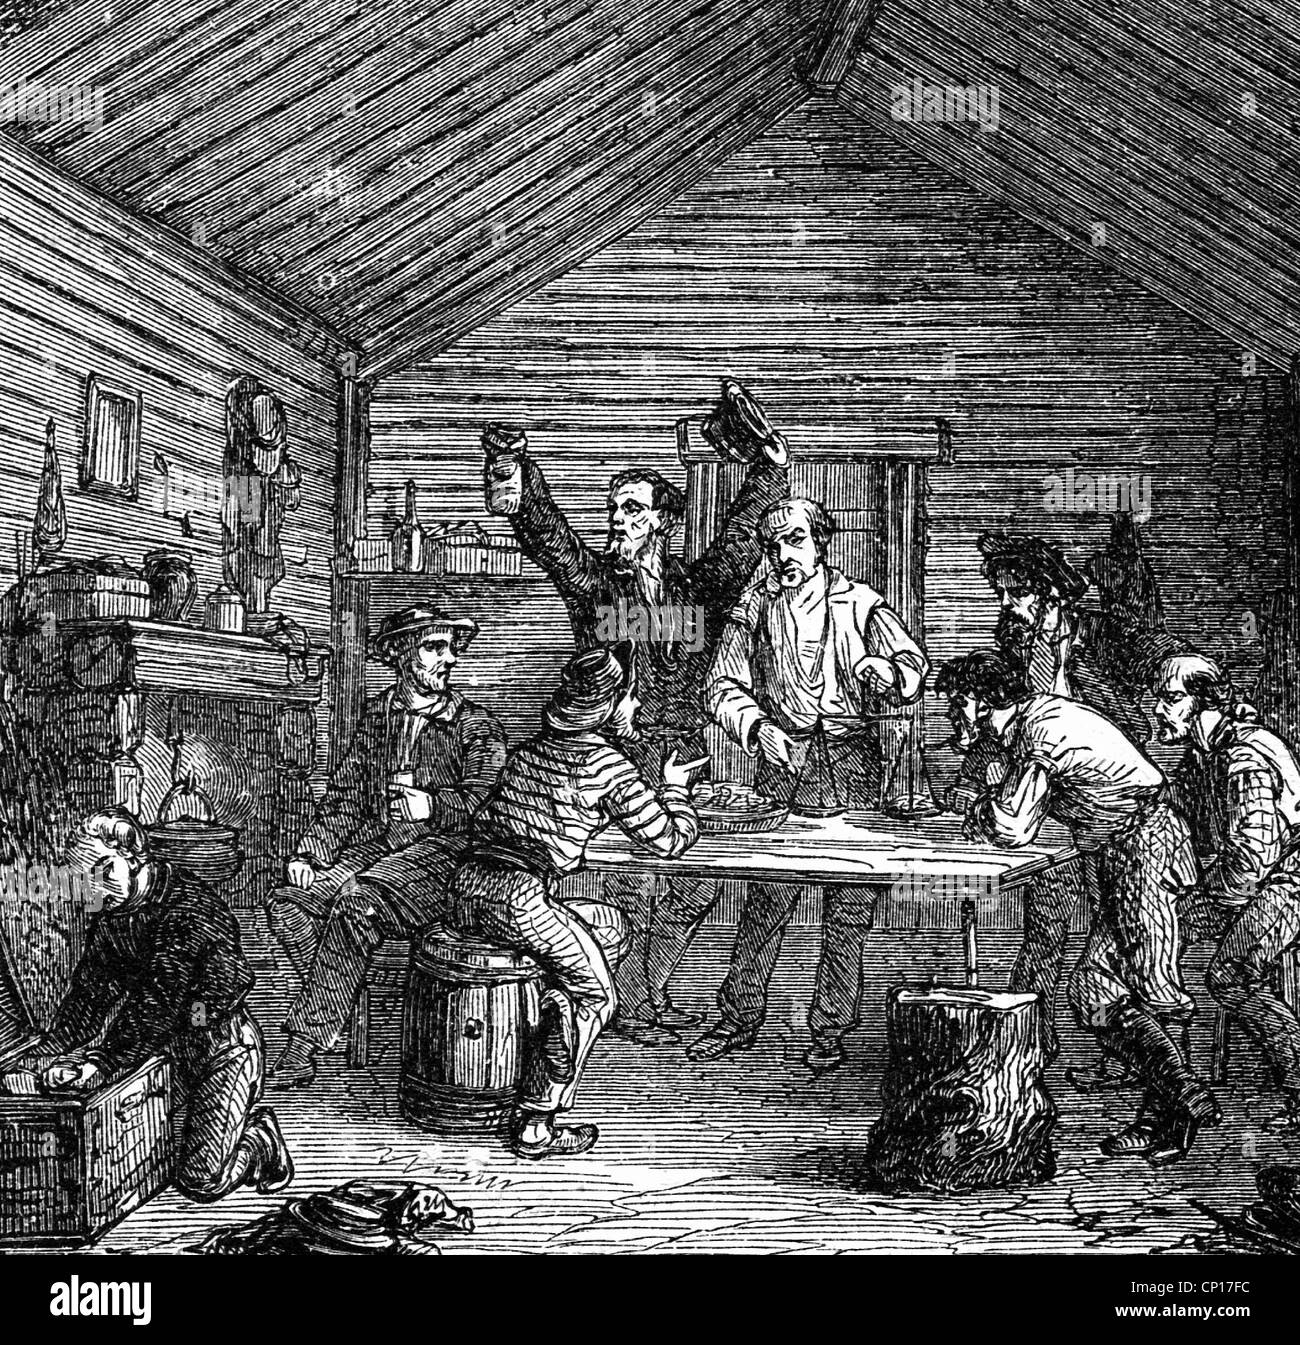 metal, gold, selling of gold dust in California, wood engraving, 19th century, gold digger, gold-diggers, golddiggers, - Stock Image